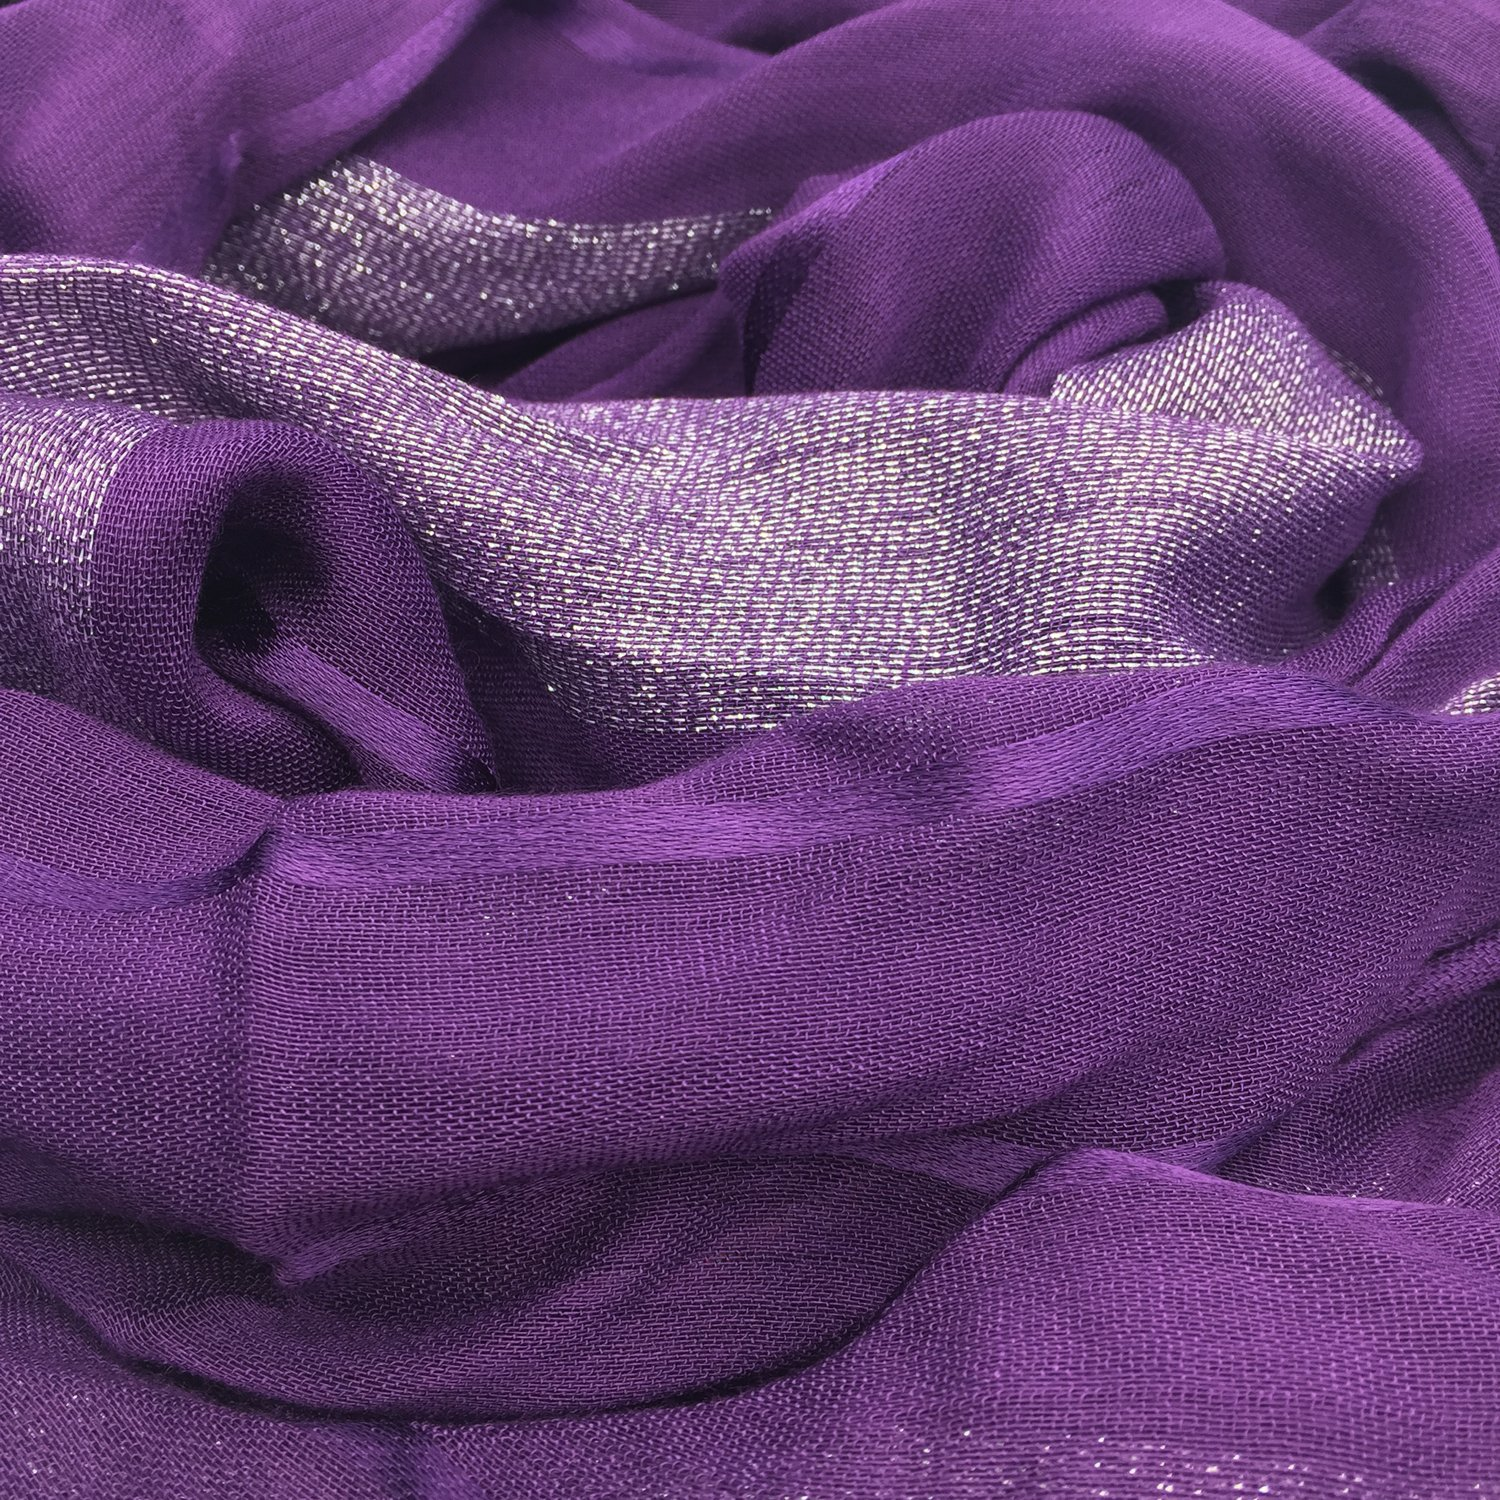 YOUR SMILE Women's Lightweight Glitter Color mixture Print Shawl Scarf For Spring Season (Purple) by YOUR SMILE (Image #2)